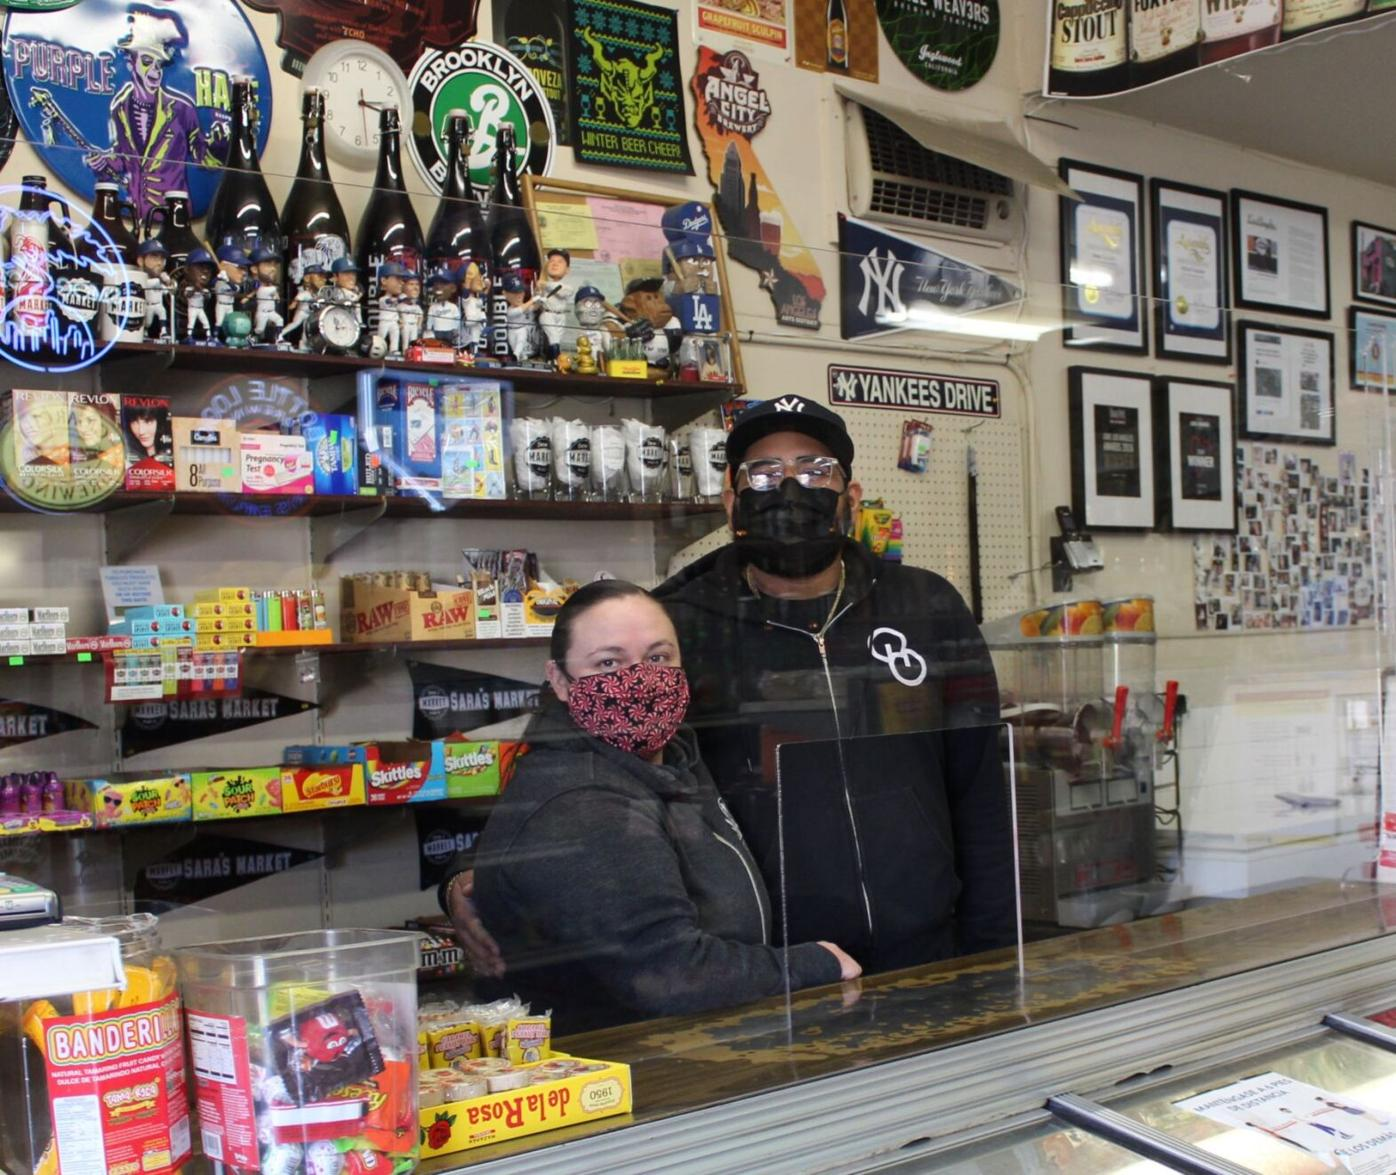 Sara's Market owners